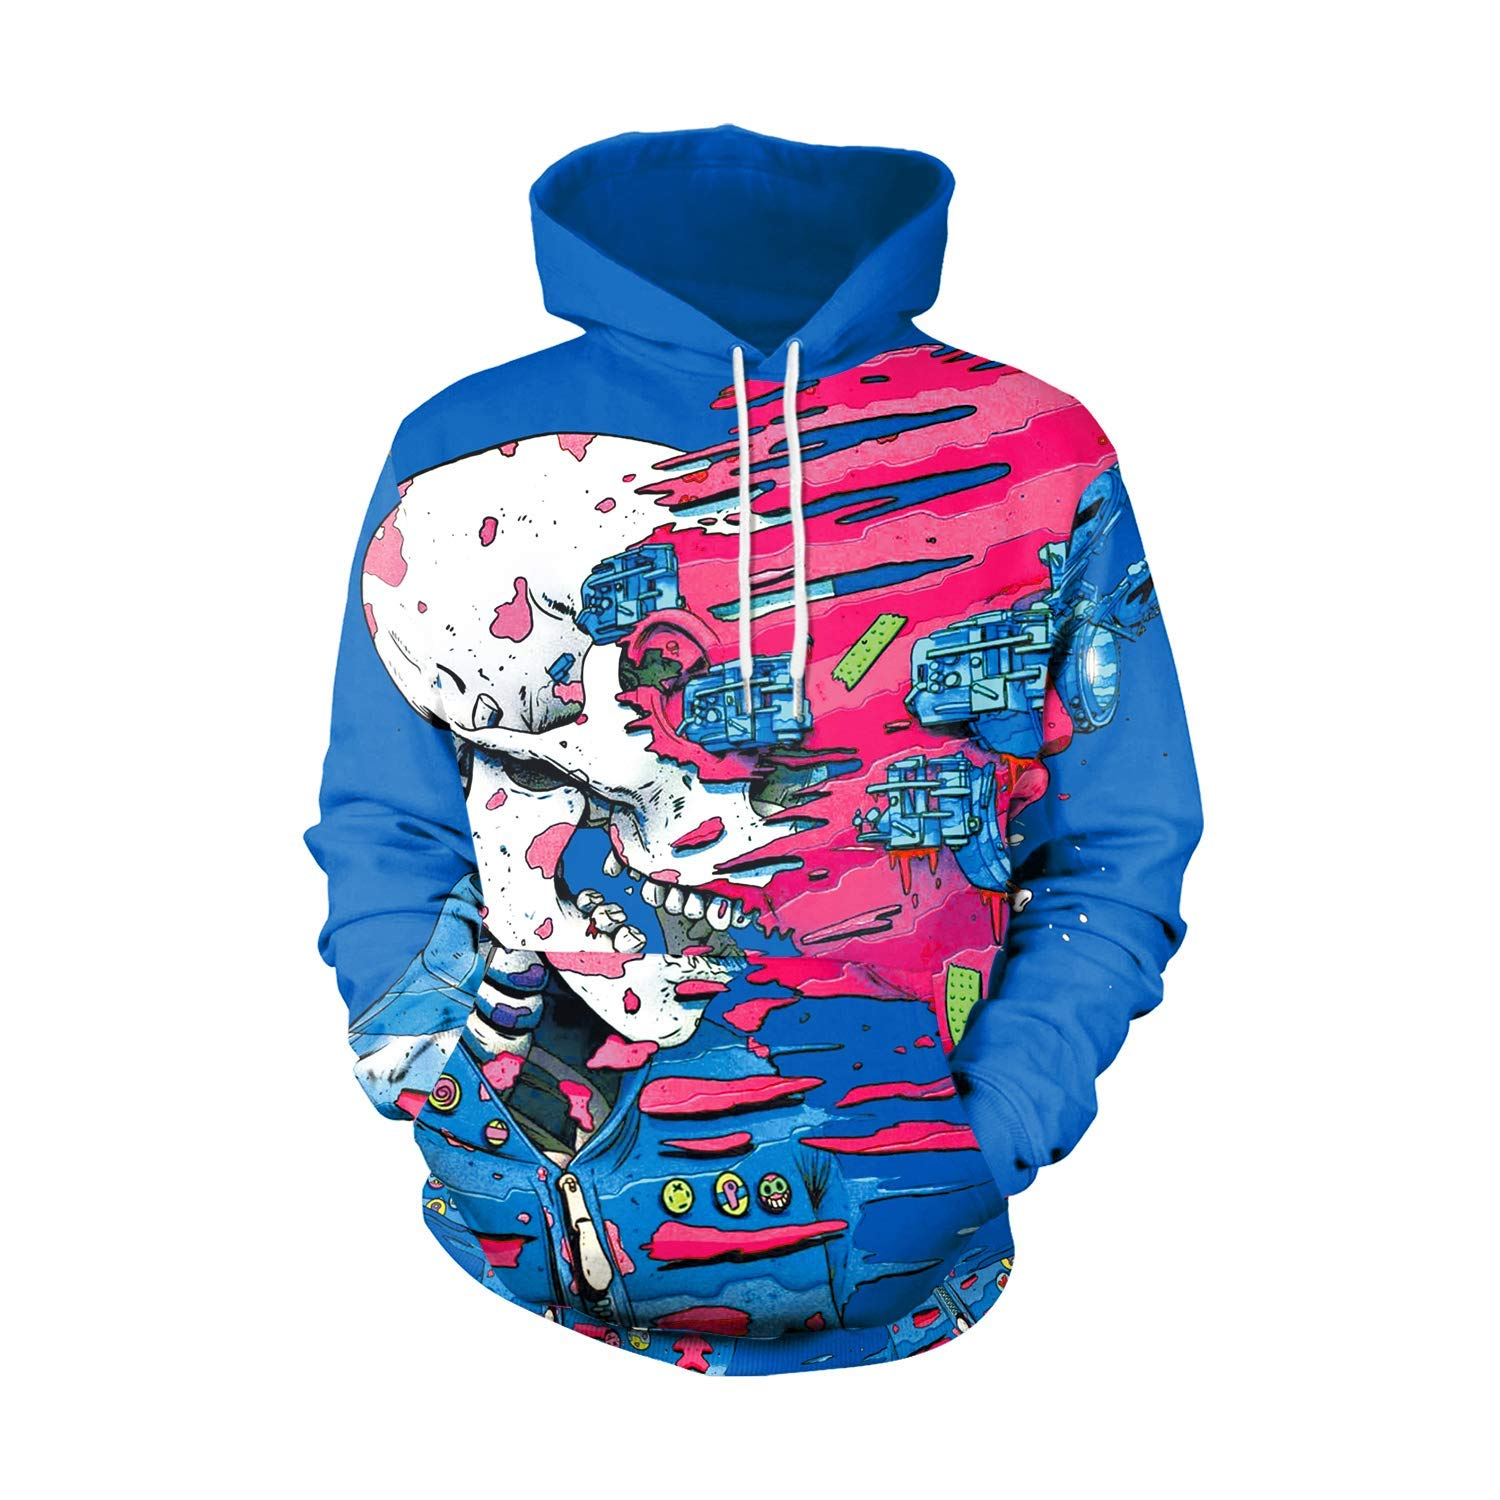 c6db034f8270 Get Quotations · Men s Hooded Long Sleeve 3D Digital Print Creative  Colorful Patchwork Design Hoodies Couple Pullover Hoodies